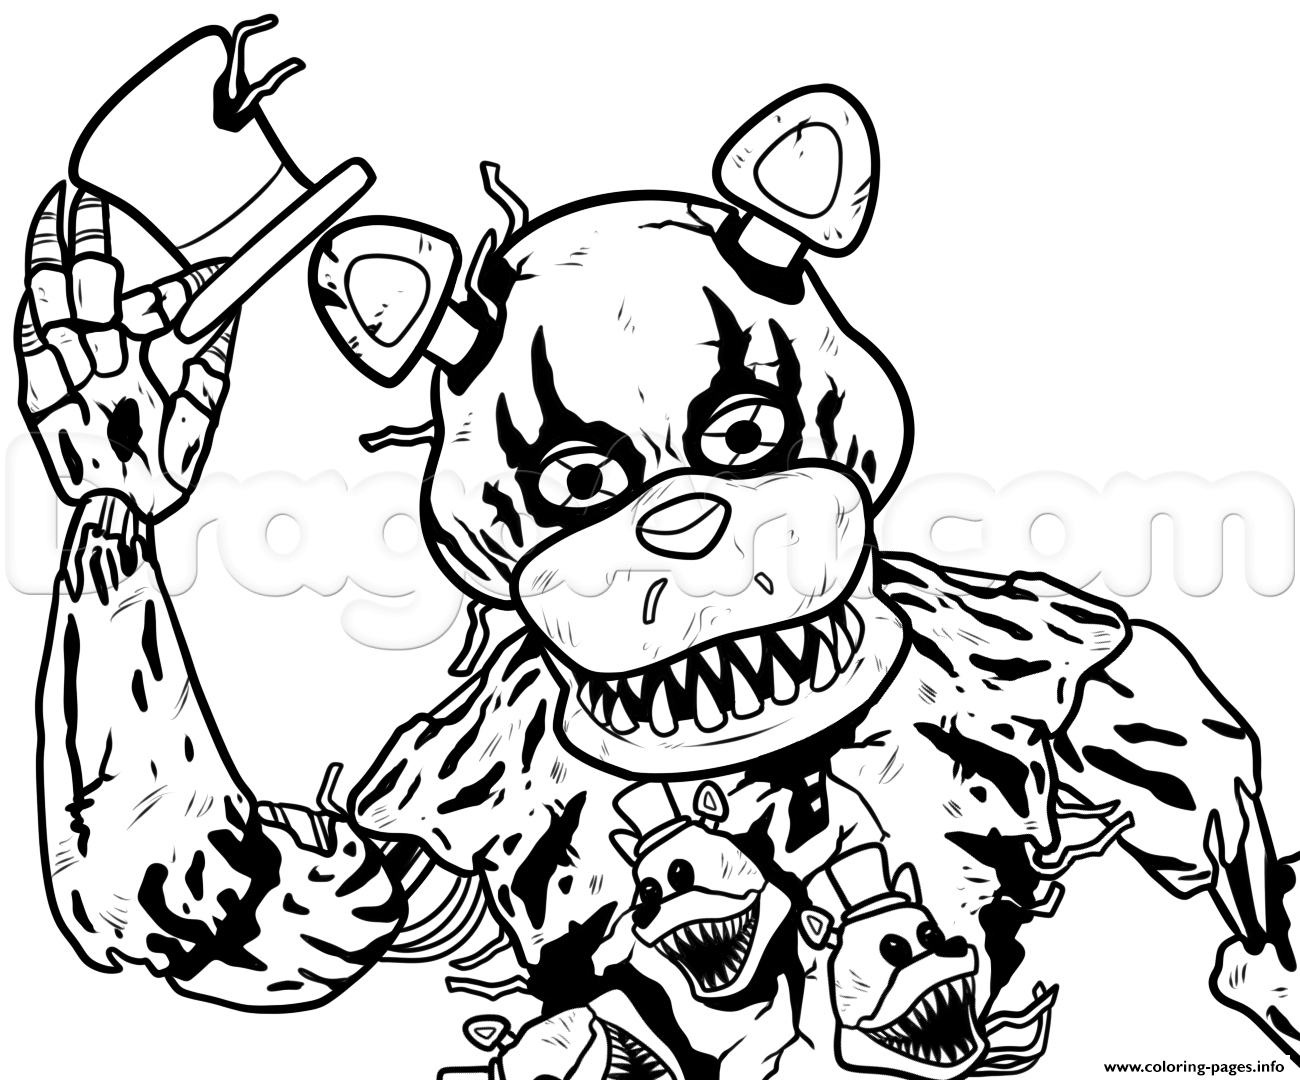 draw nightmare freddy fazbear five nights at freddys fnaf coloring pages